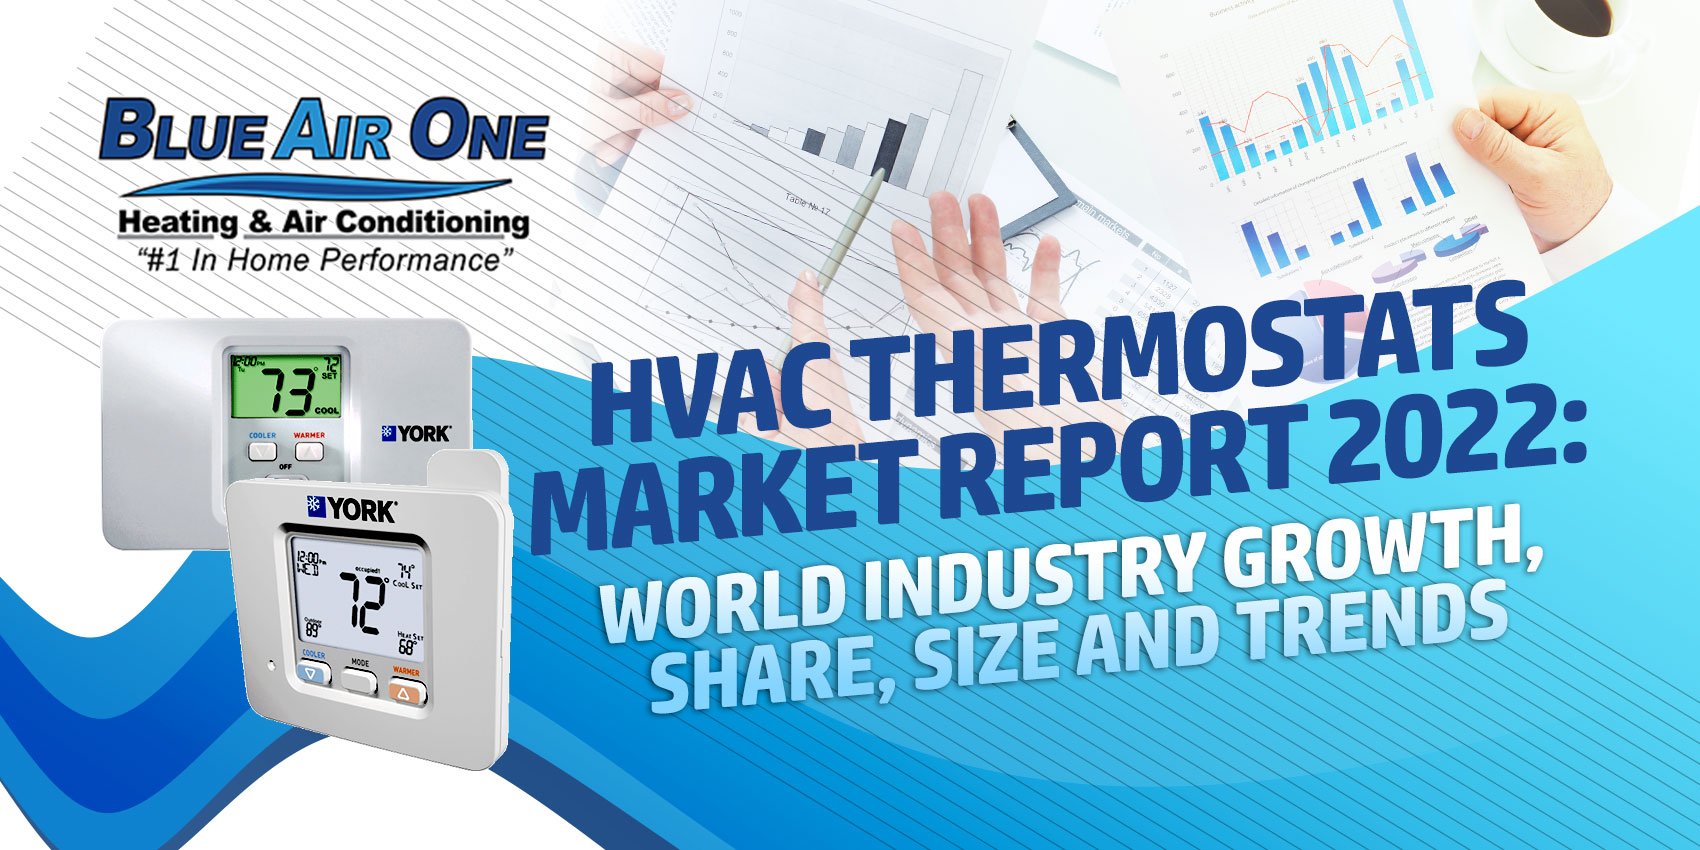 HVAC Thermostats Market Report 2022: World Industry Growth, Share, Size and Trends